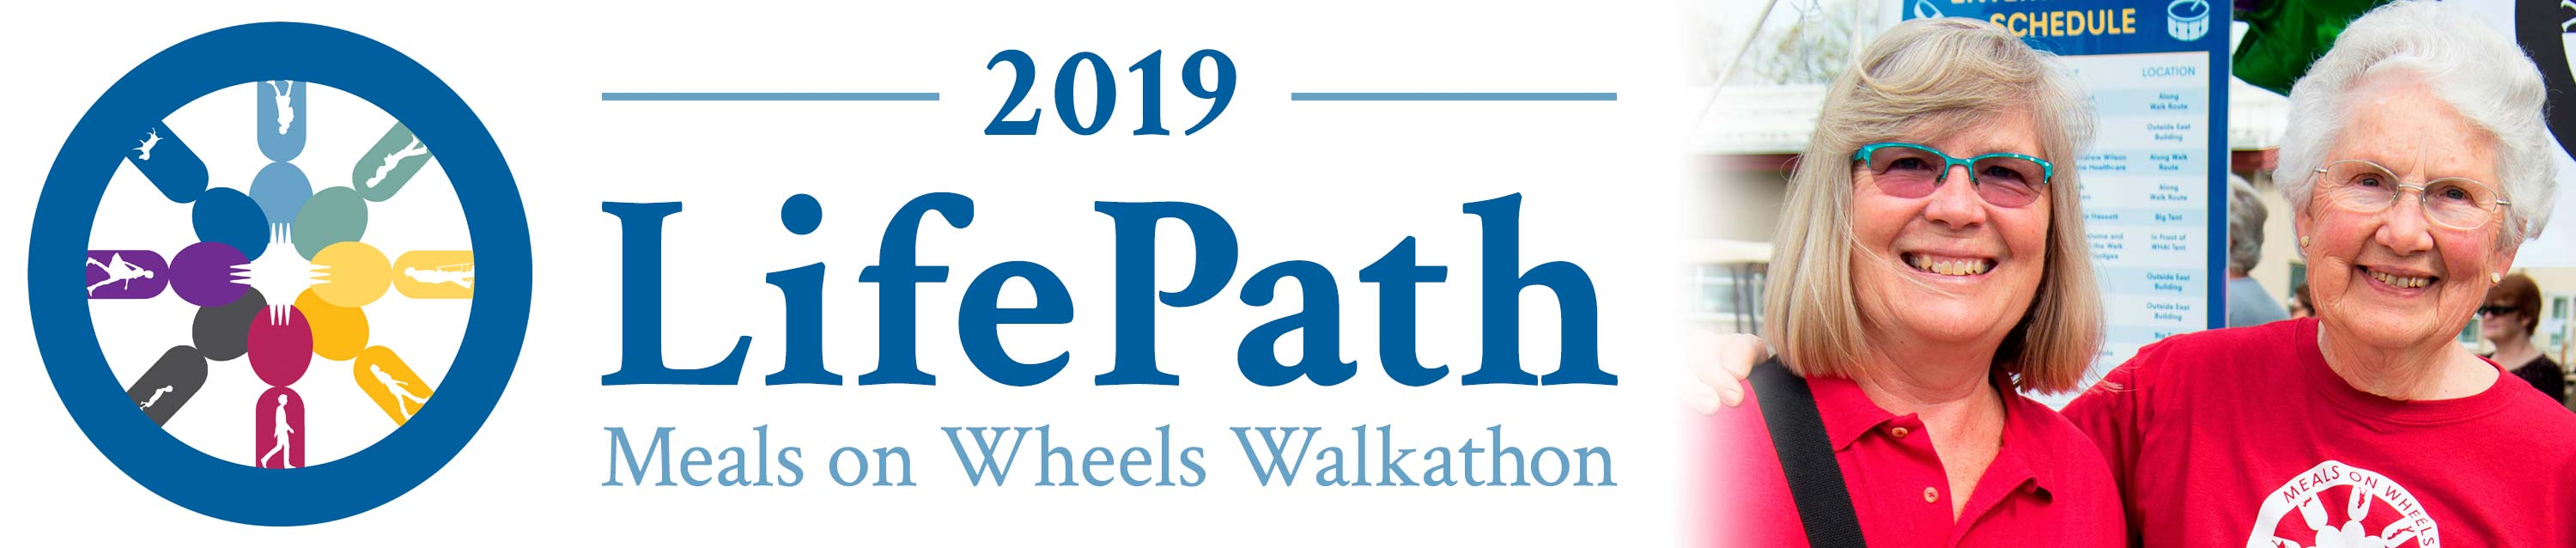 2019 LifePath Meals on Wheels Walkathon